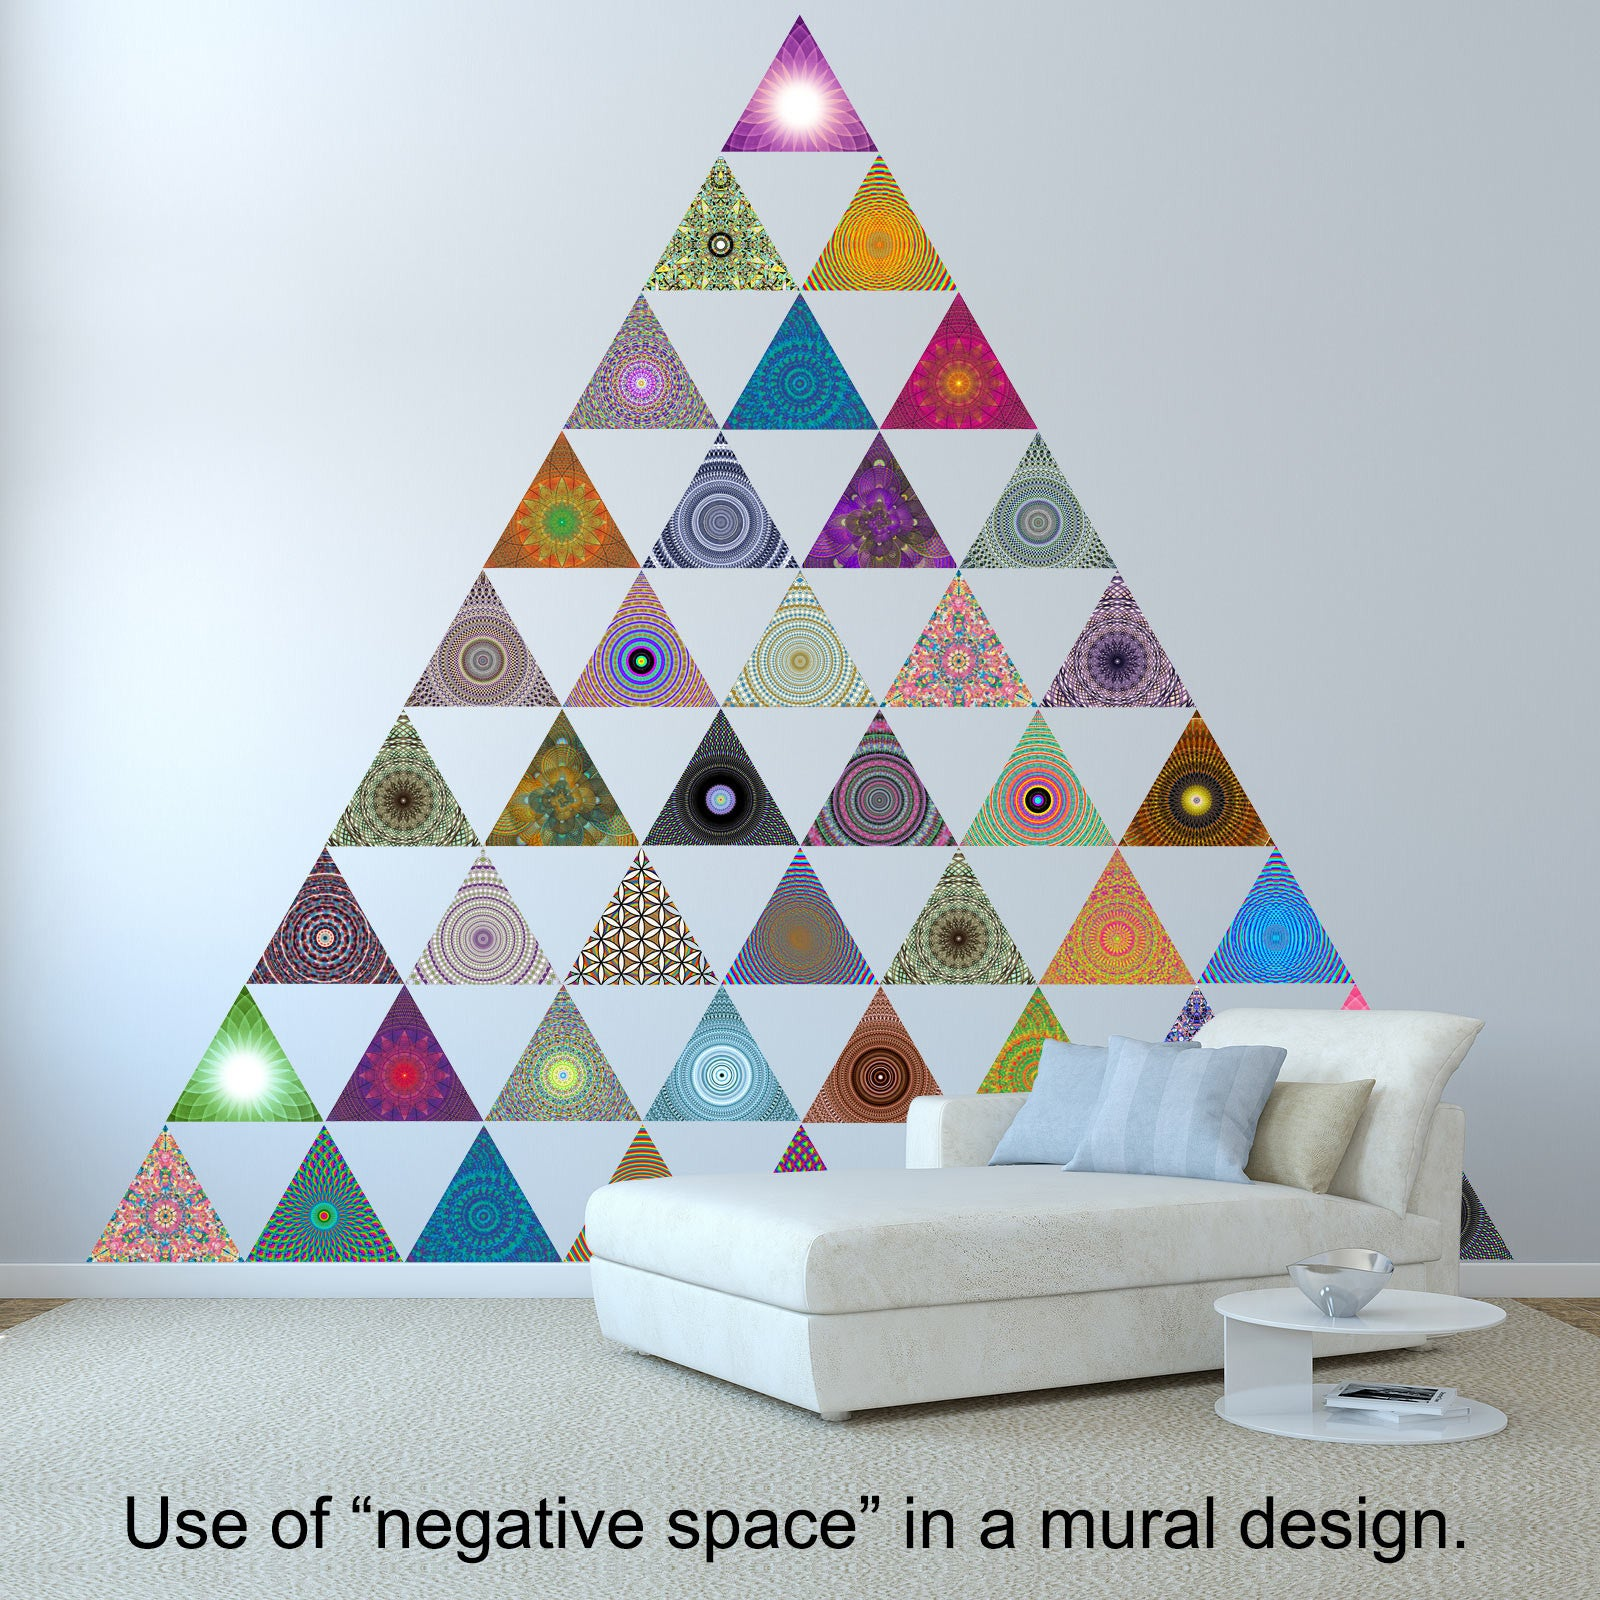 Triangle wall stickers tagged triangle conspicuous design large triangle wall mural modular wall stickers interactive art triangle decals example modern interior living room amipublicfo Gallery